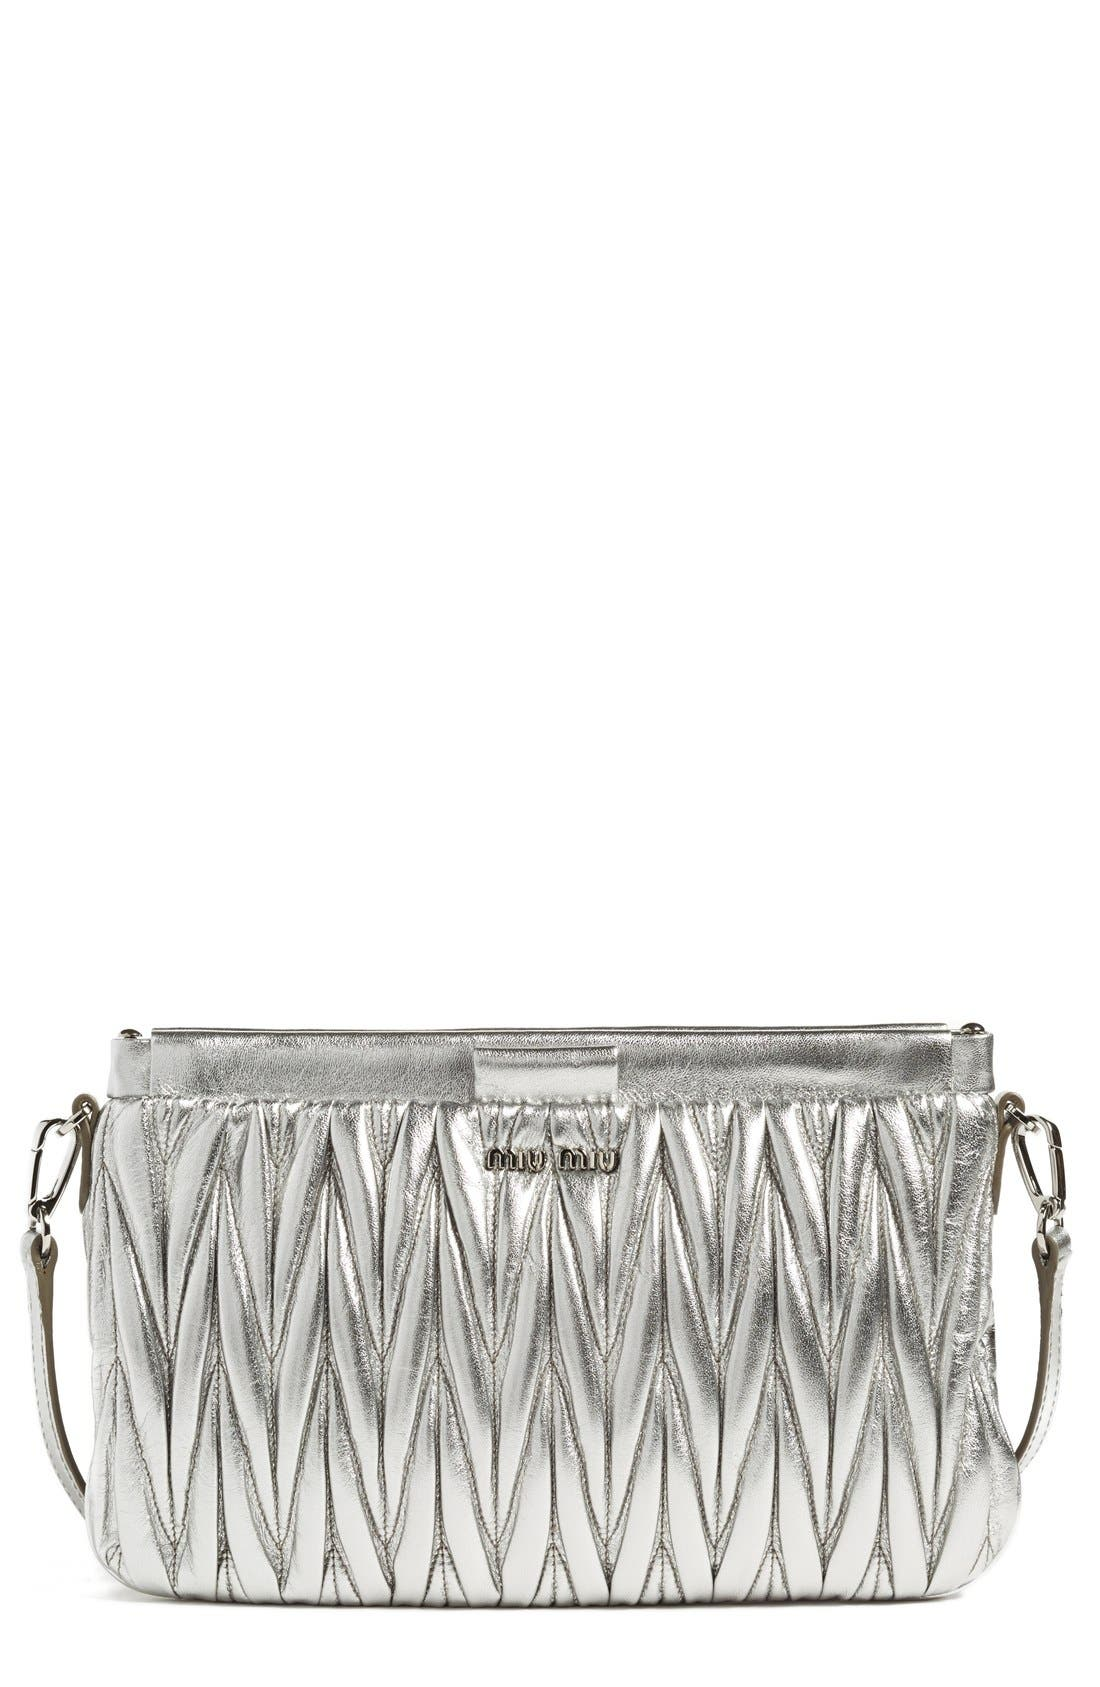 MIU MIU Small Matelassé Leather Clutch